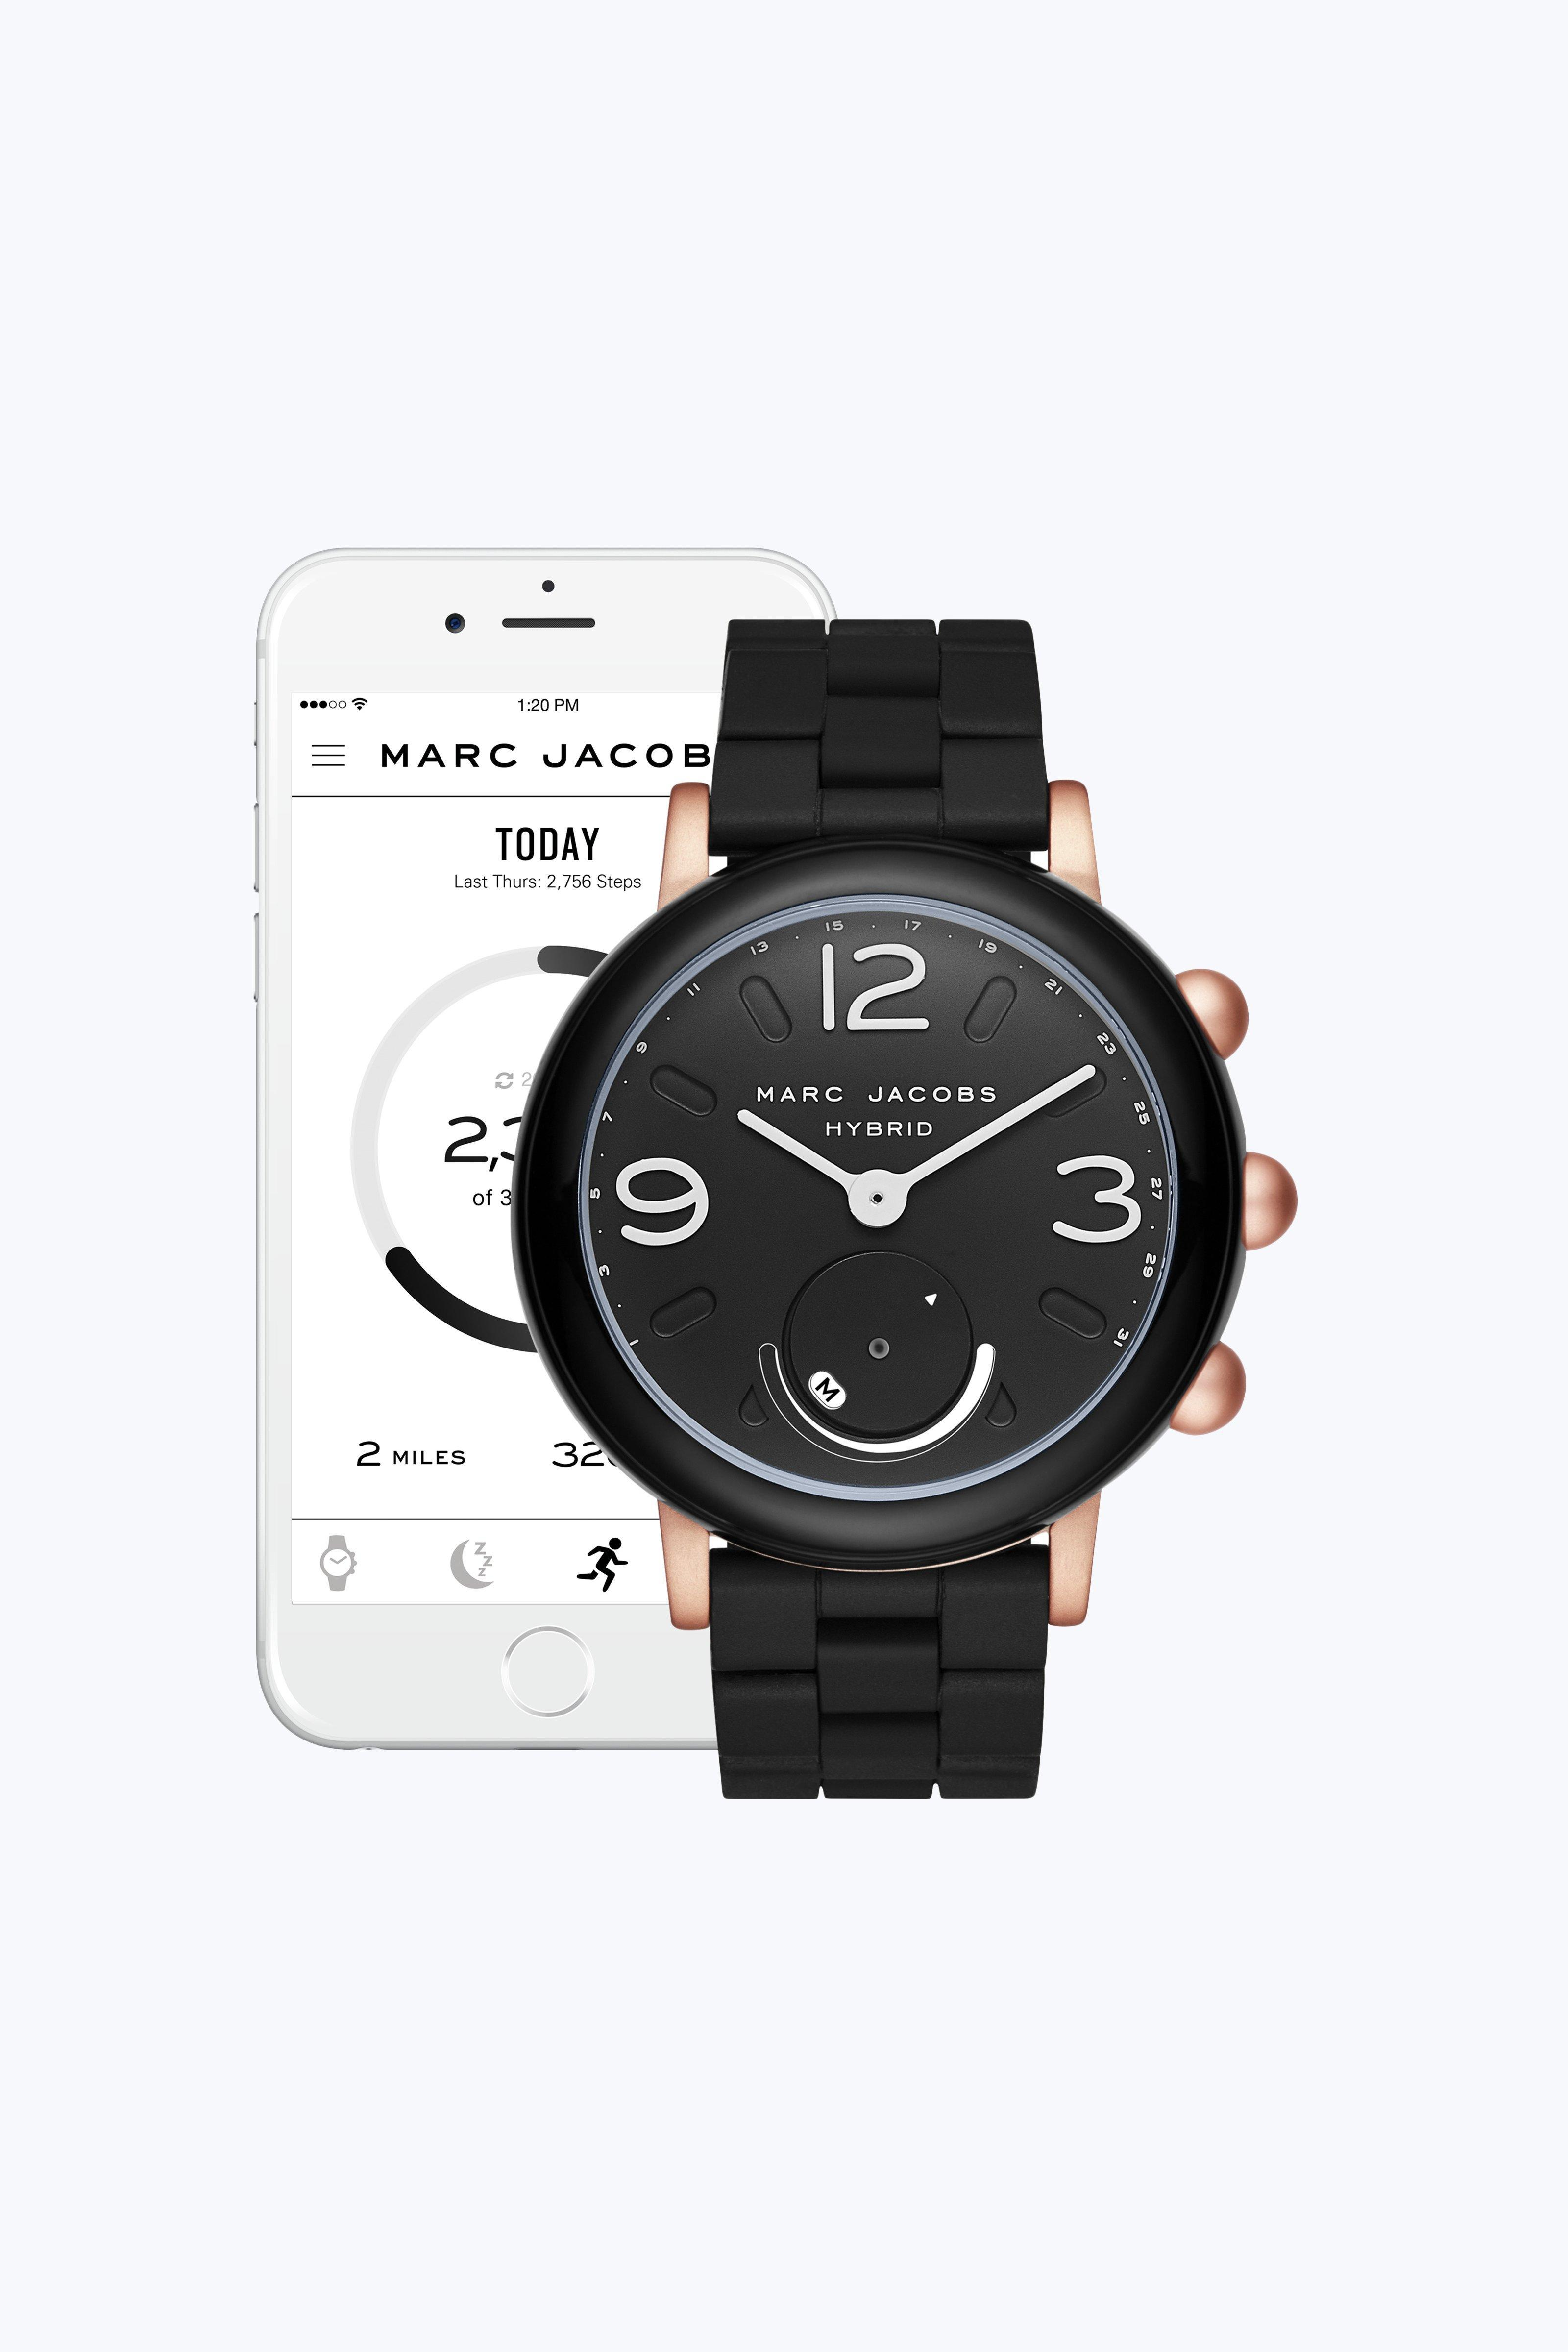 line smartwatch review and there attractive basic skagen the limited hybrid i new after package though is watches do health connected if re for you an think features signatur functionality a market like